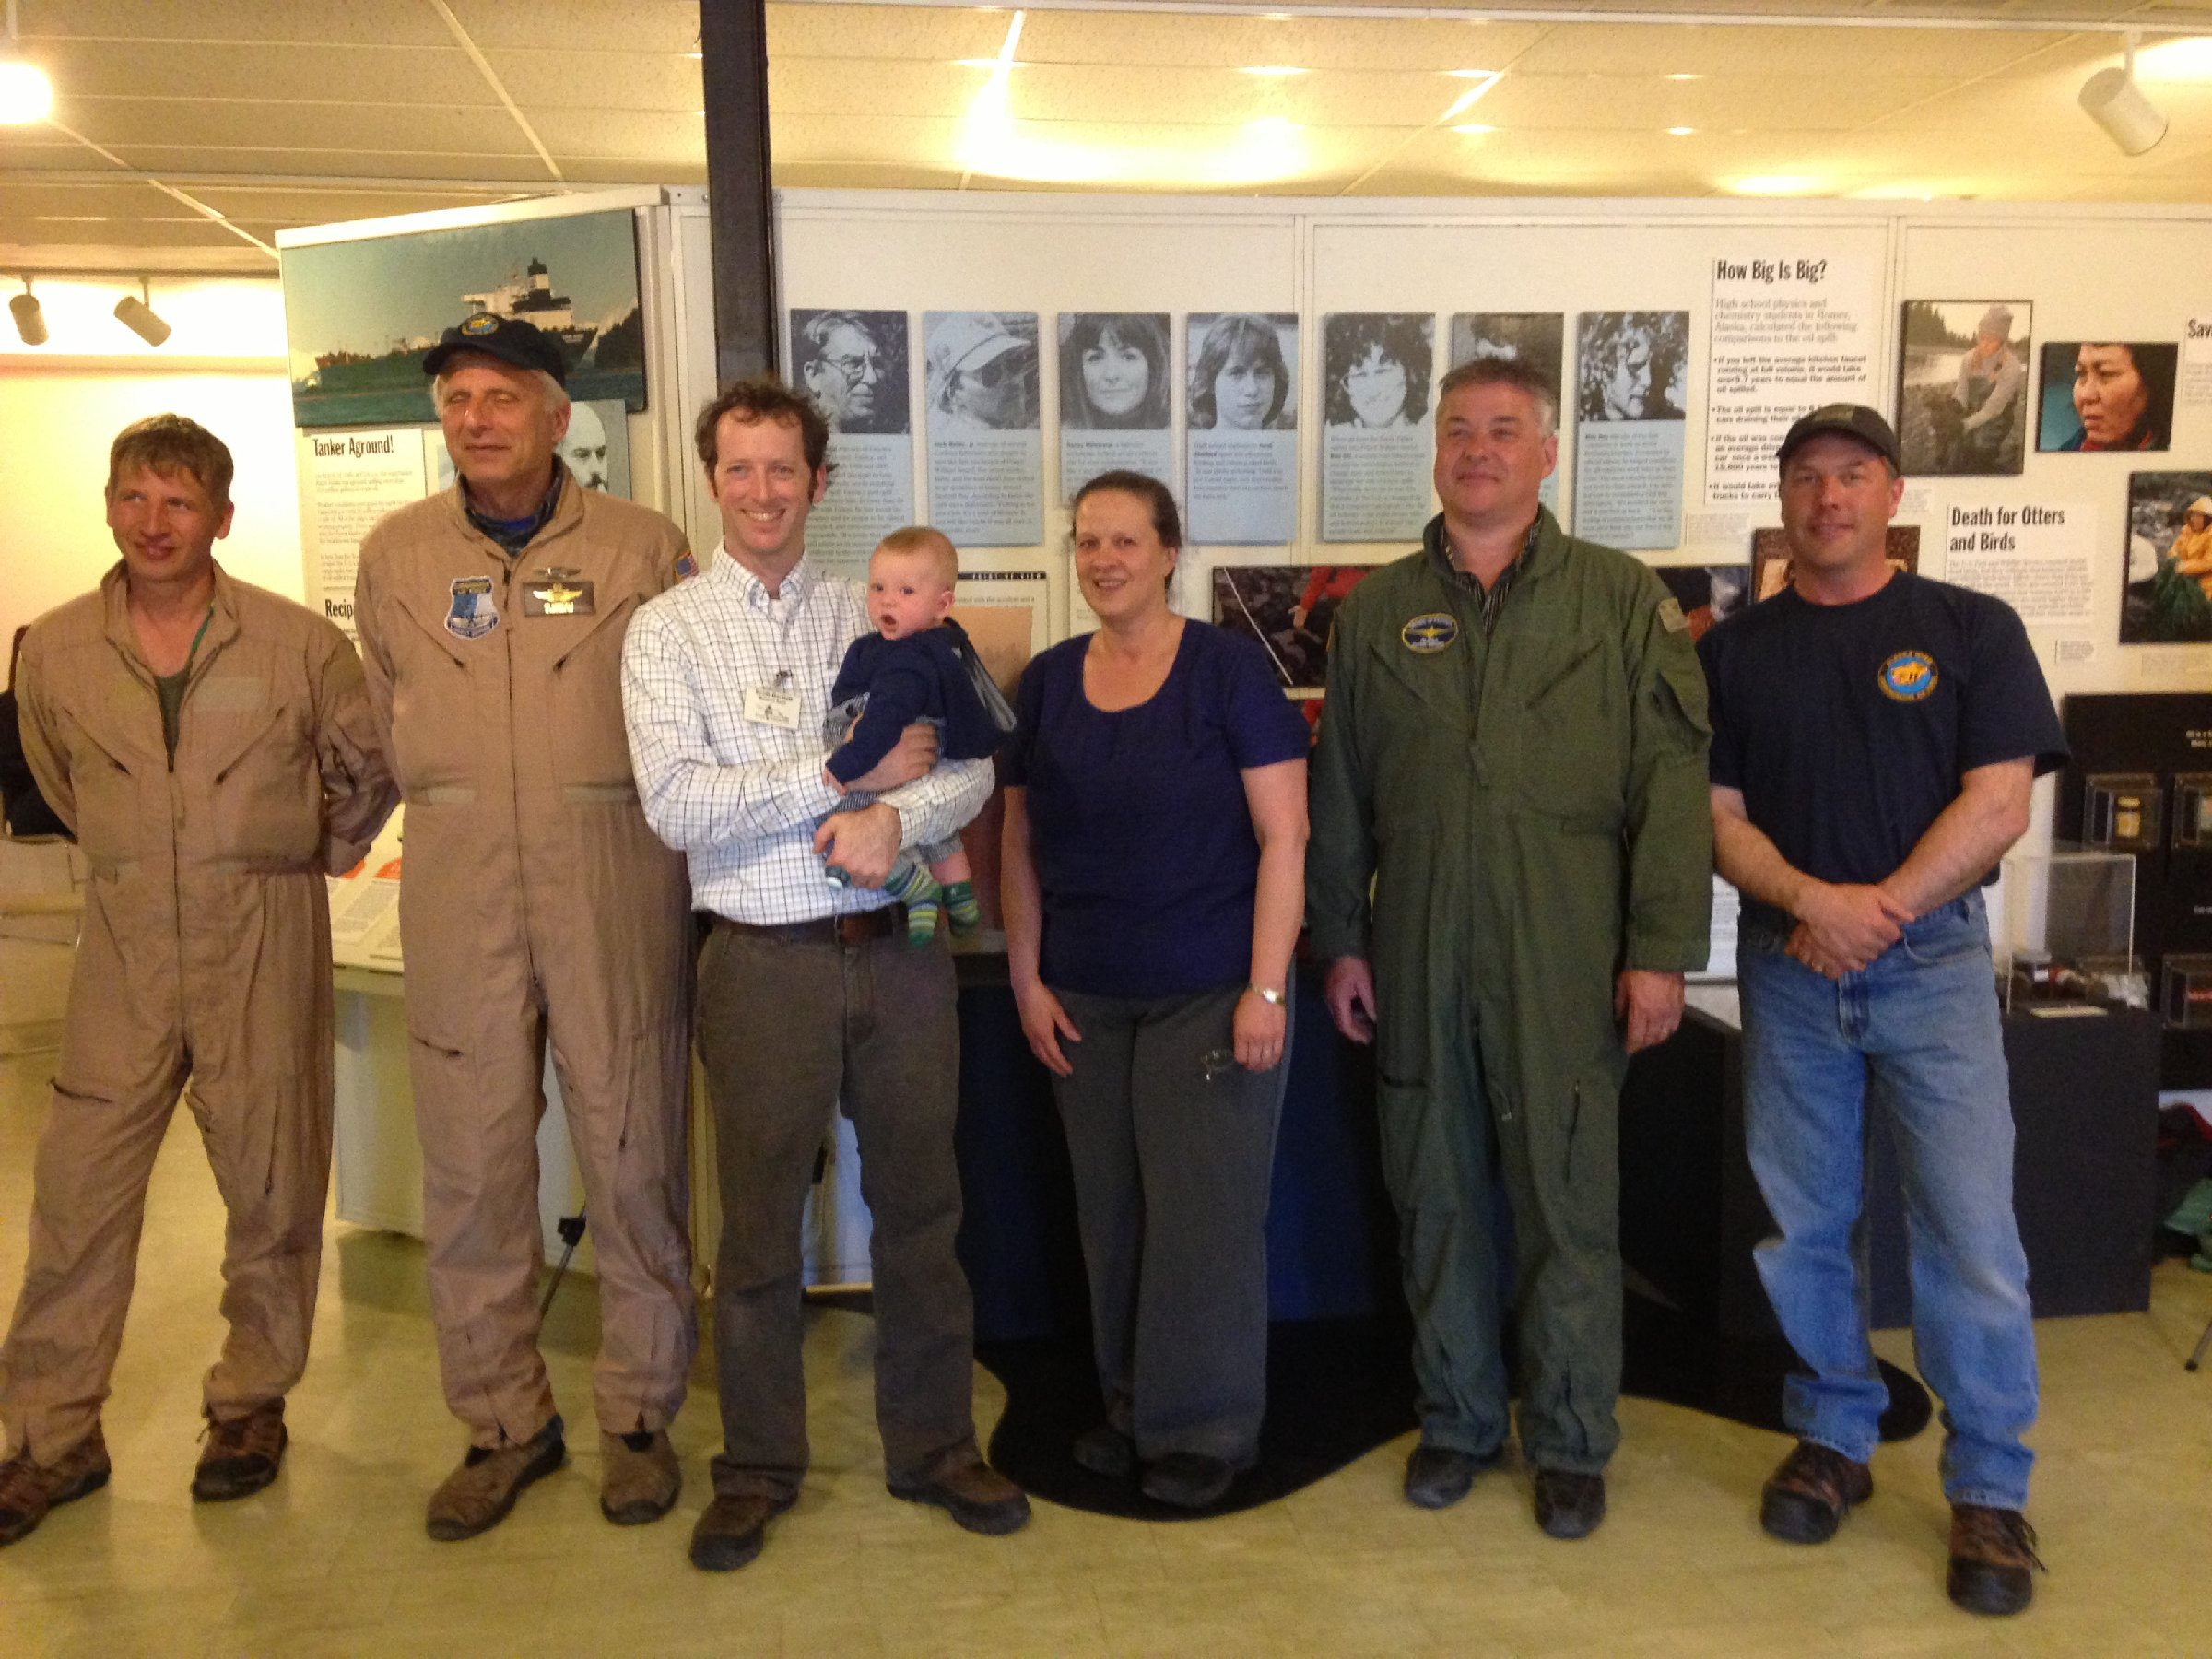 Pilots and Mayor with Scott Bartlett Curator Pratt Museum and Centennial Coordinator for Pratt Museum event.